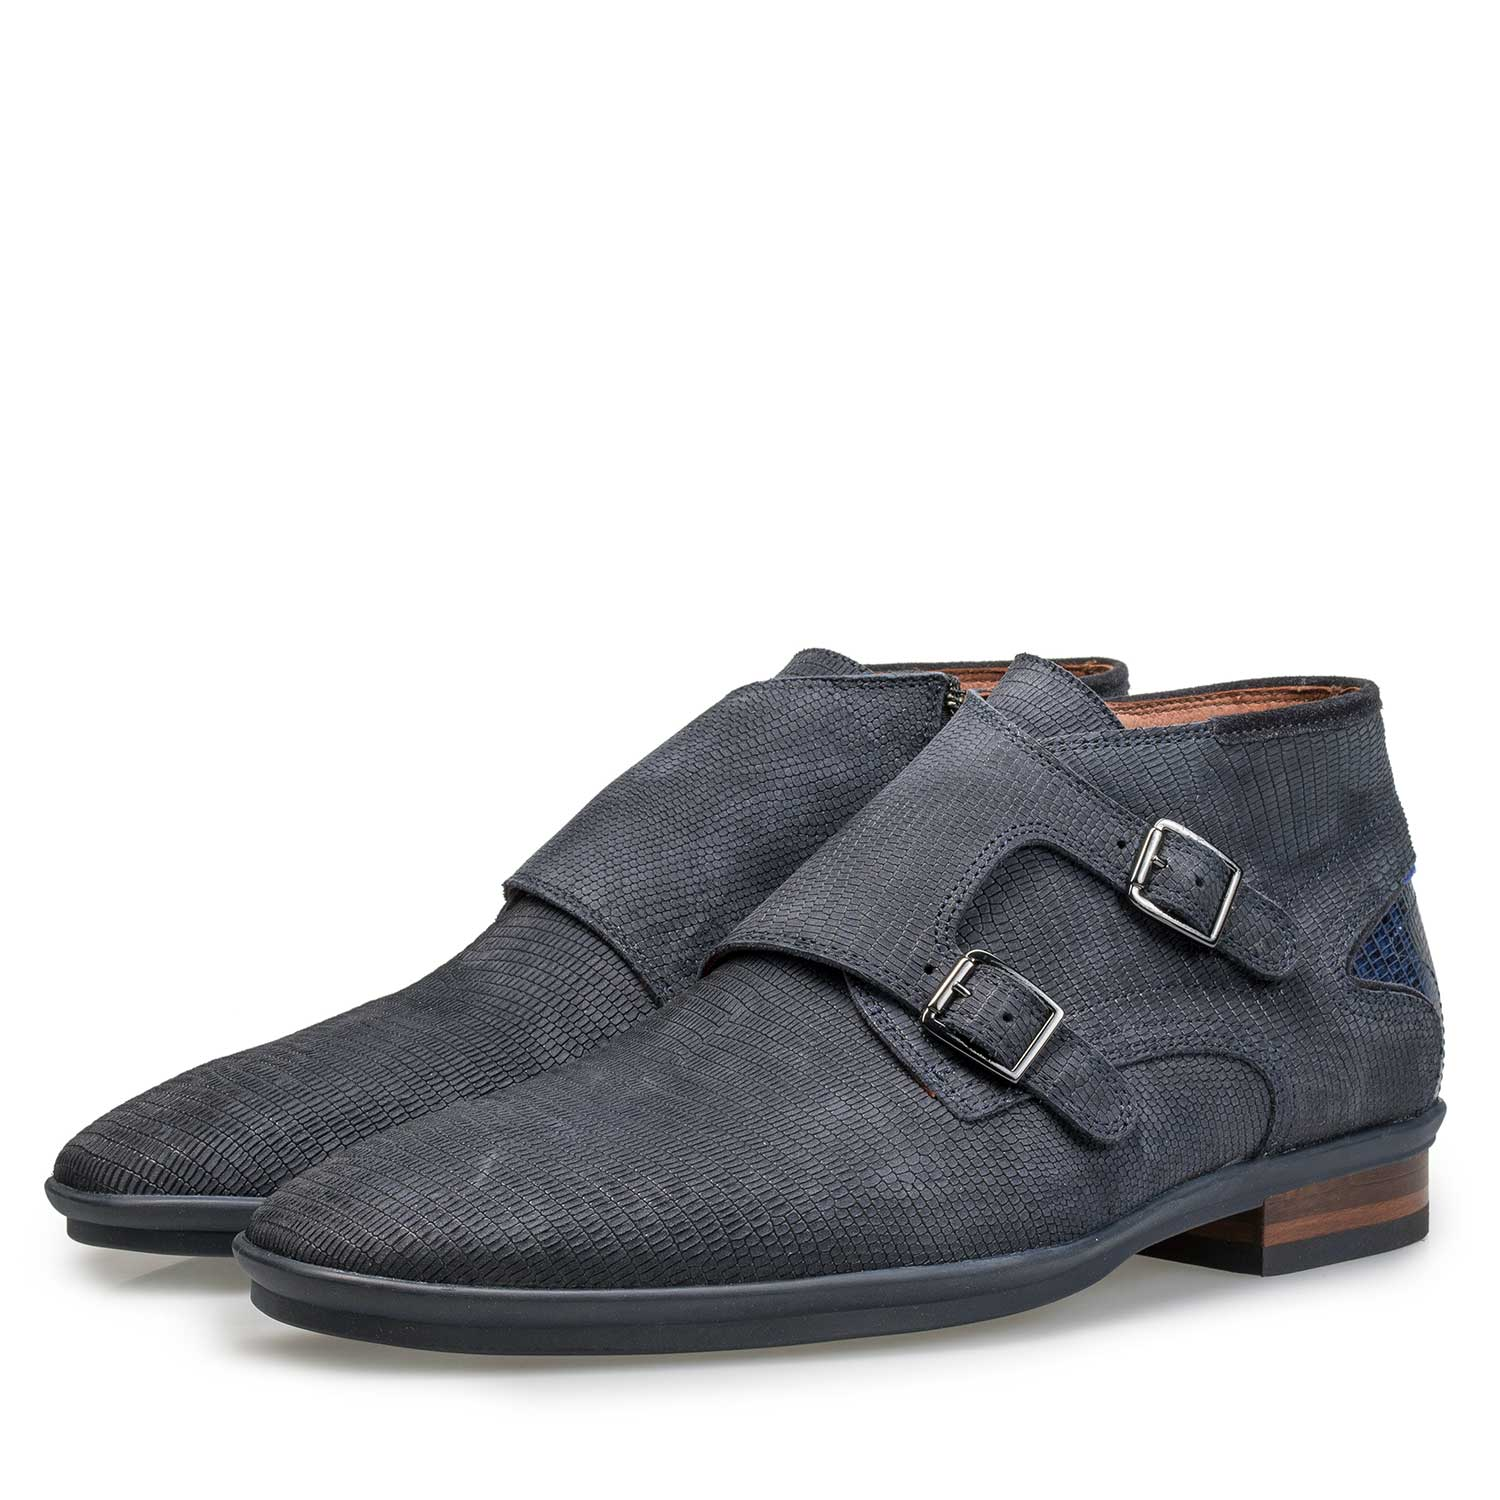 10137/02 - Mid-high blue leather buckled shoe